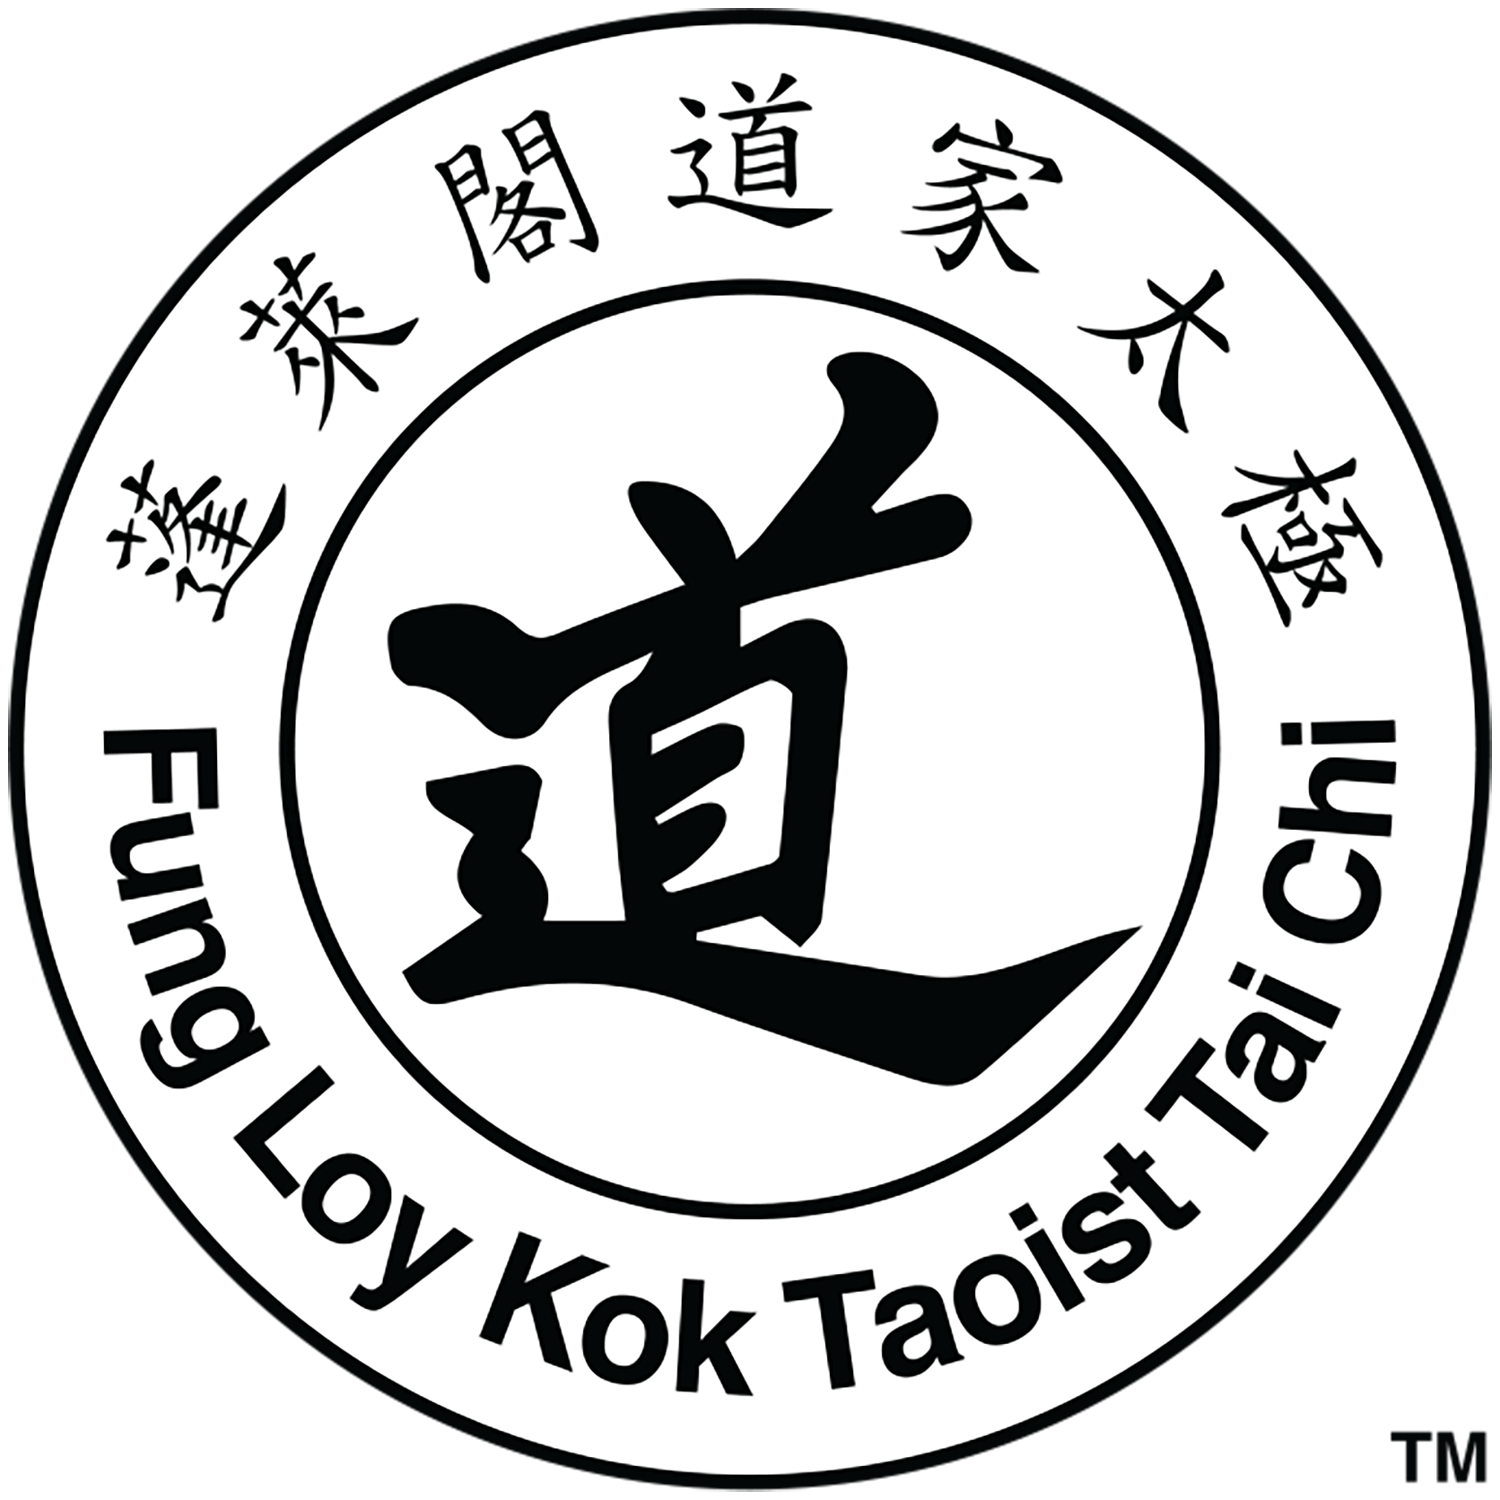 Fung Loy Kok Institute of Taoism